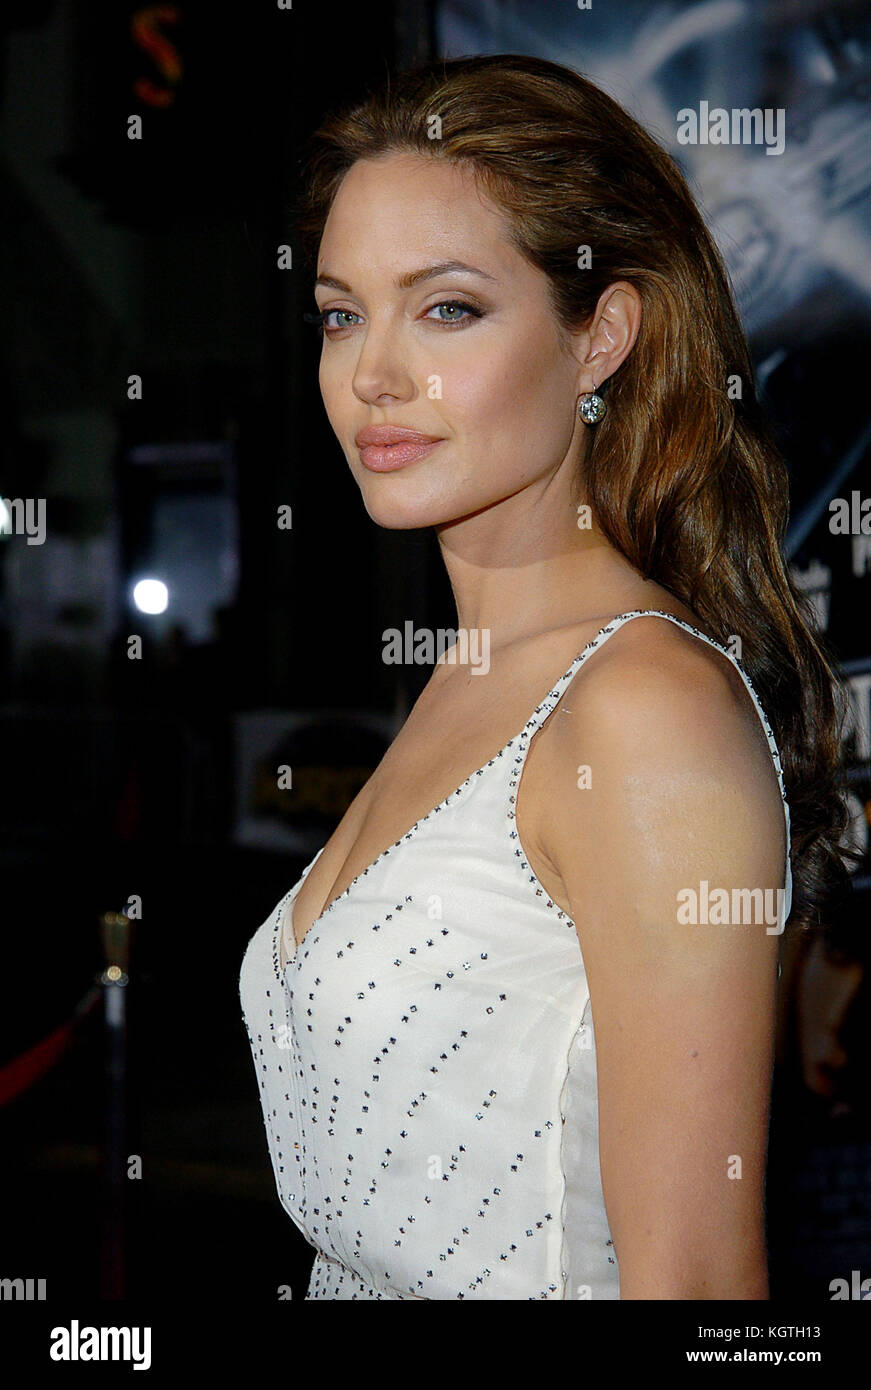 Angelina Jolie arriving at the Sky Captain and the World of Tomorrow Premiere at the Chinese Theatre in Los Angeles. - Stock Image